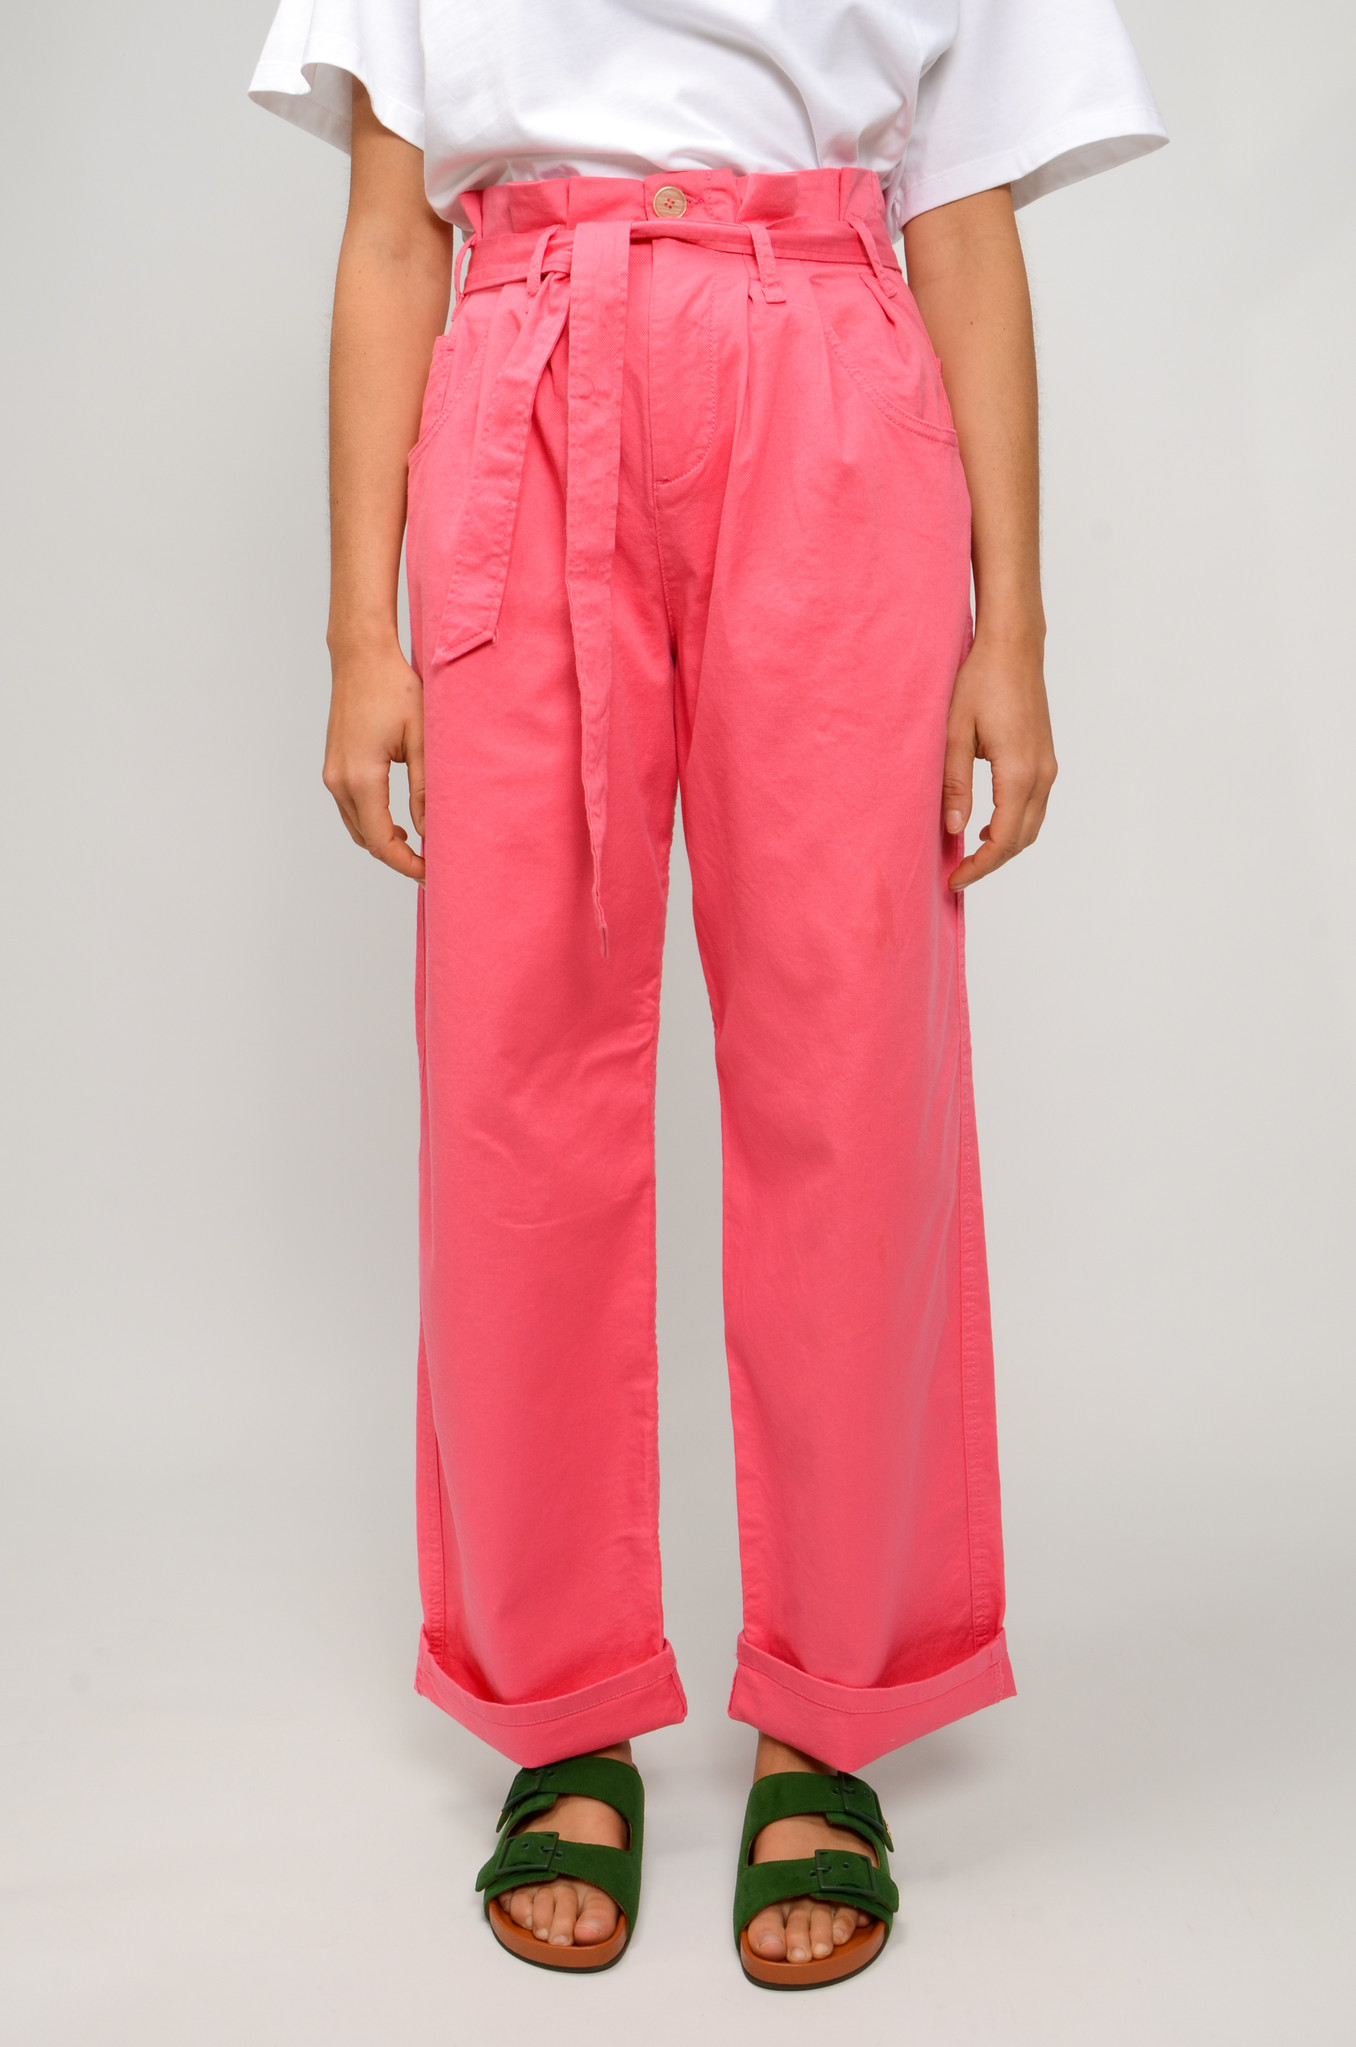 NYSHA TROUSERS IN HONEYSUCKLE PINK-1